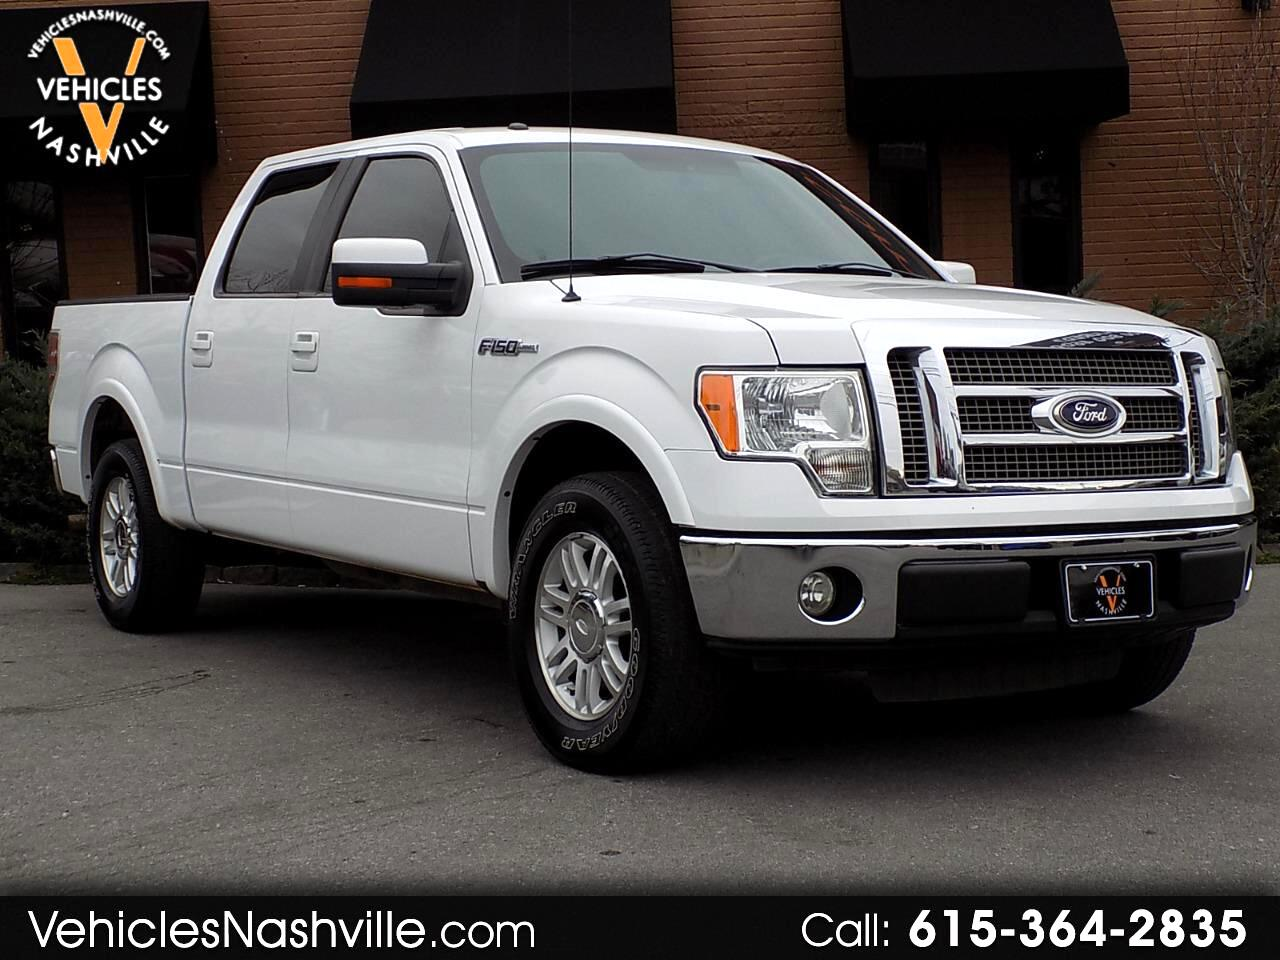 2010 Ford F-150 2WD SuperCrew 139